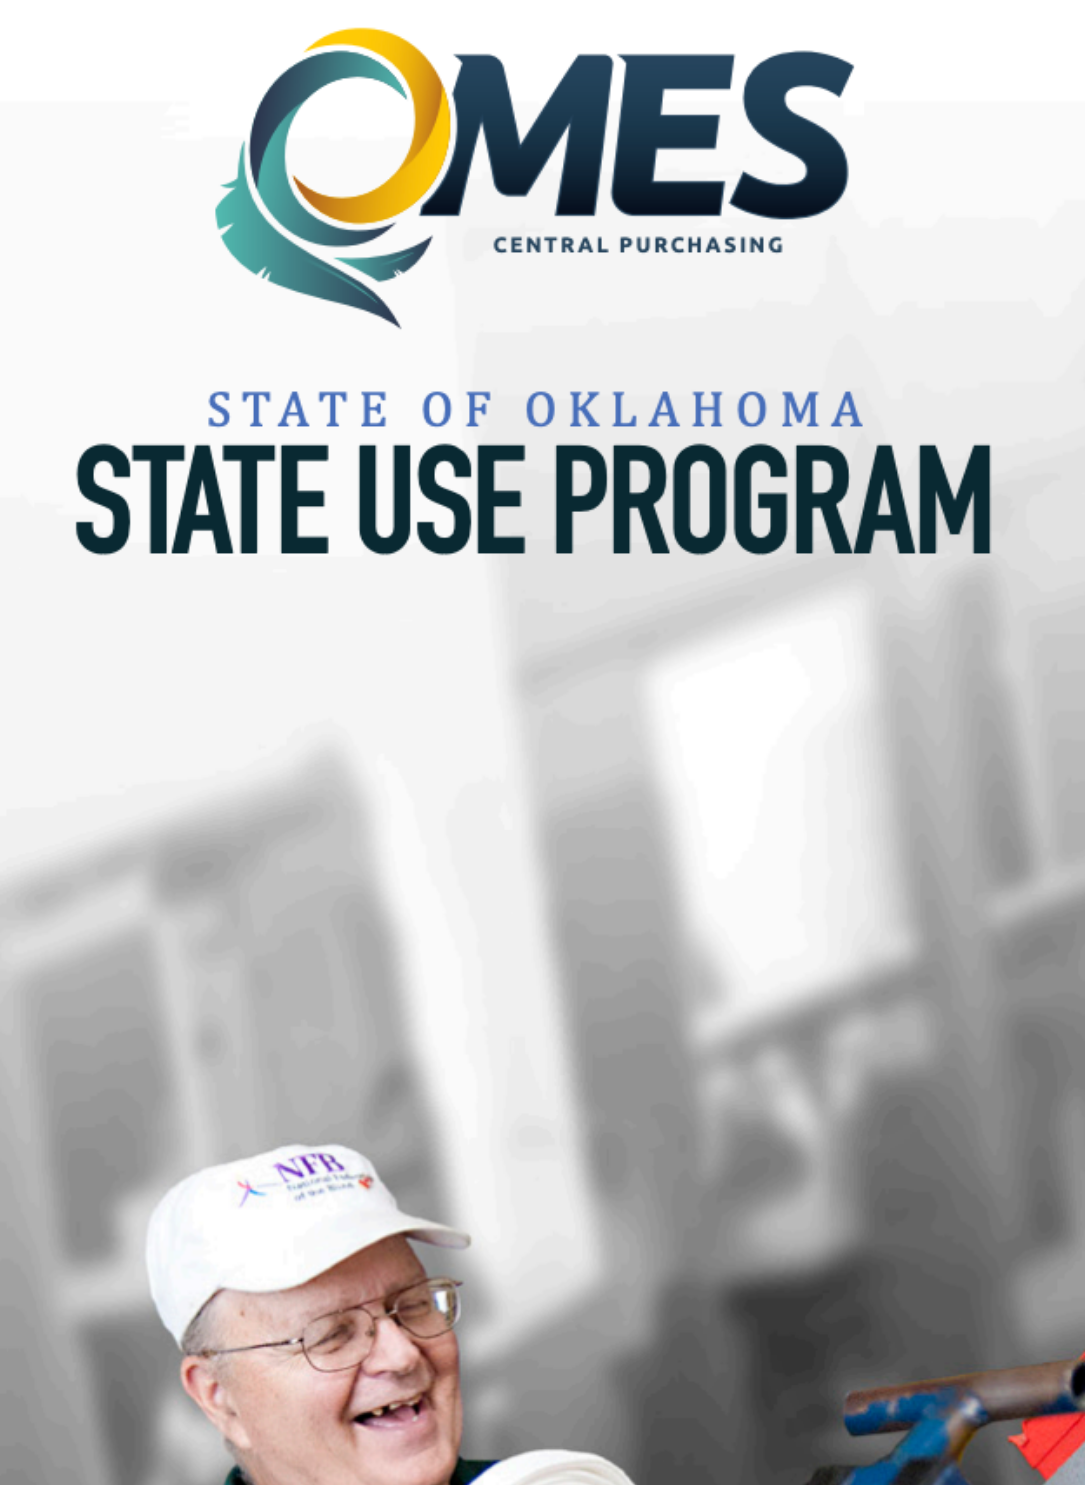 State Use Brochure